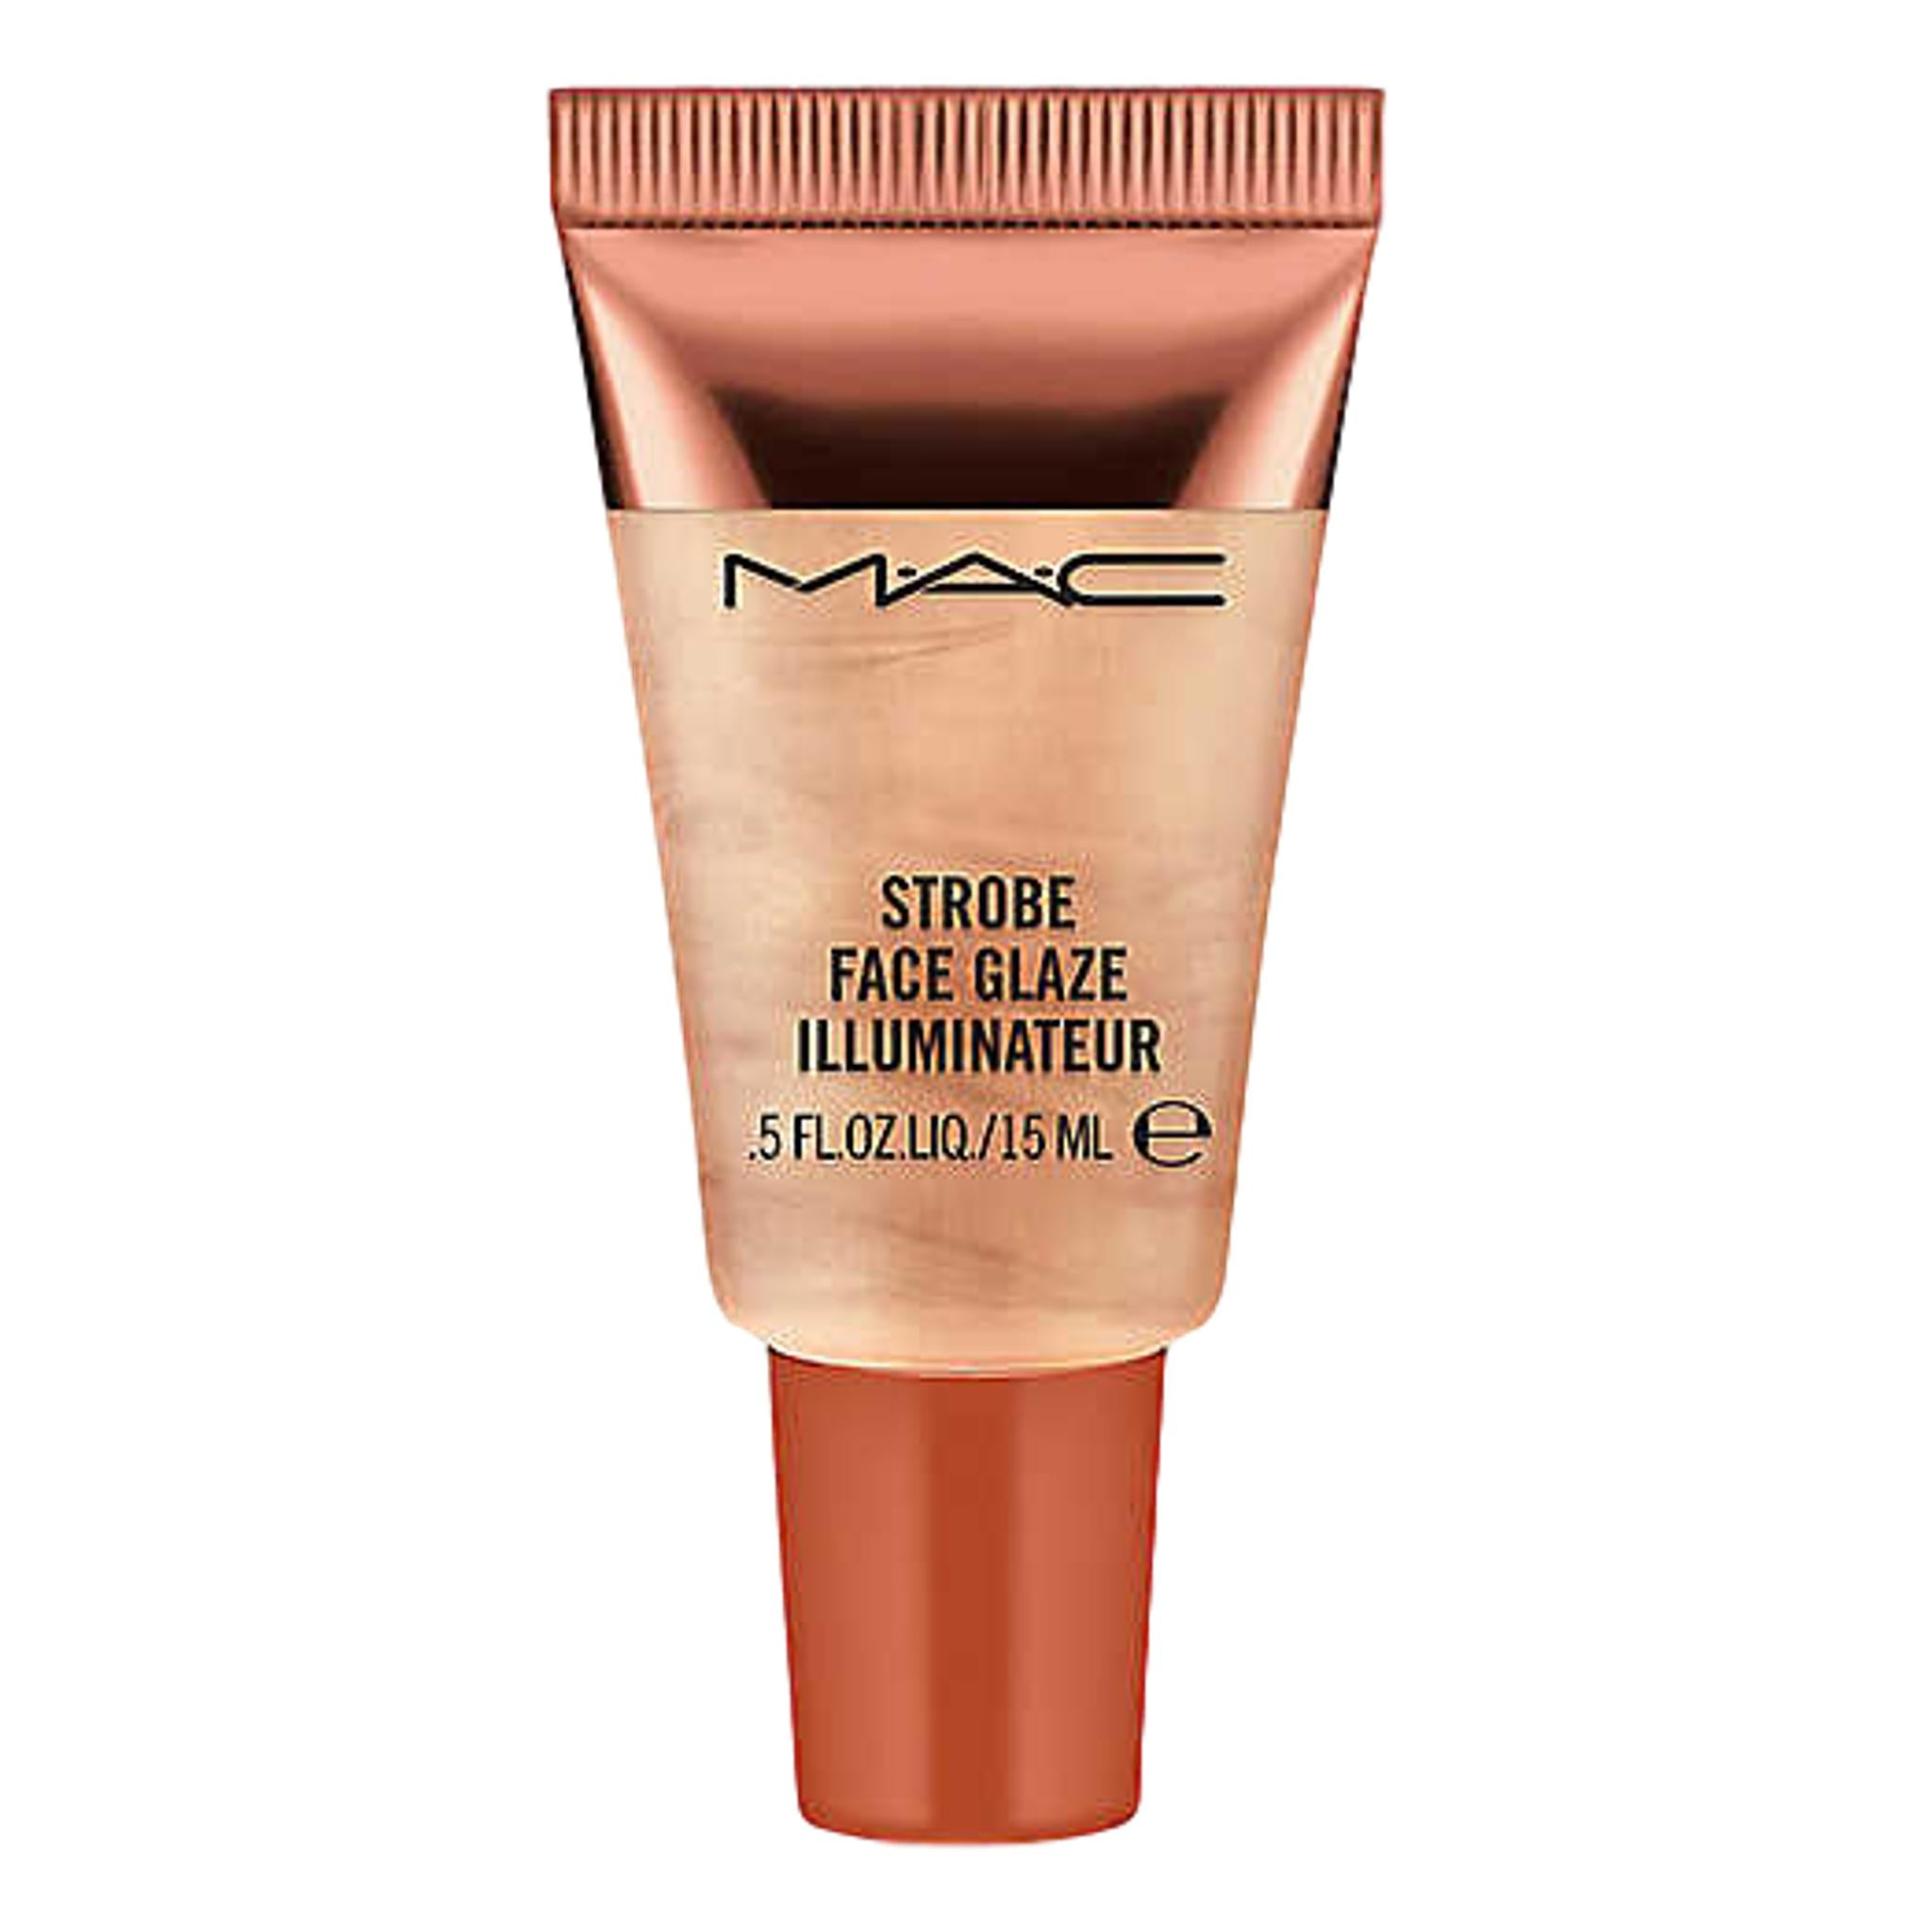 MAC Strobe Face Glaze, 15ml, Illuminator, London Loves Beauty